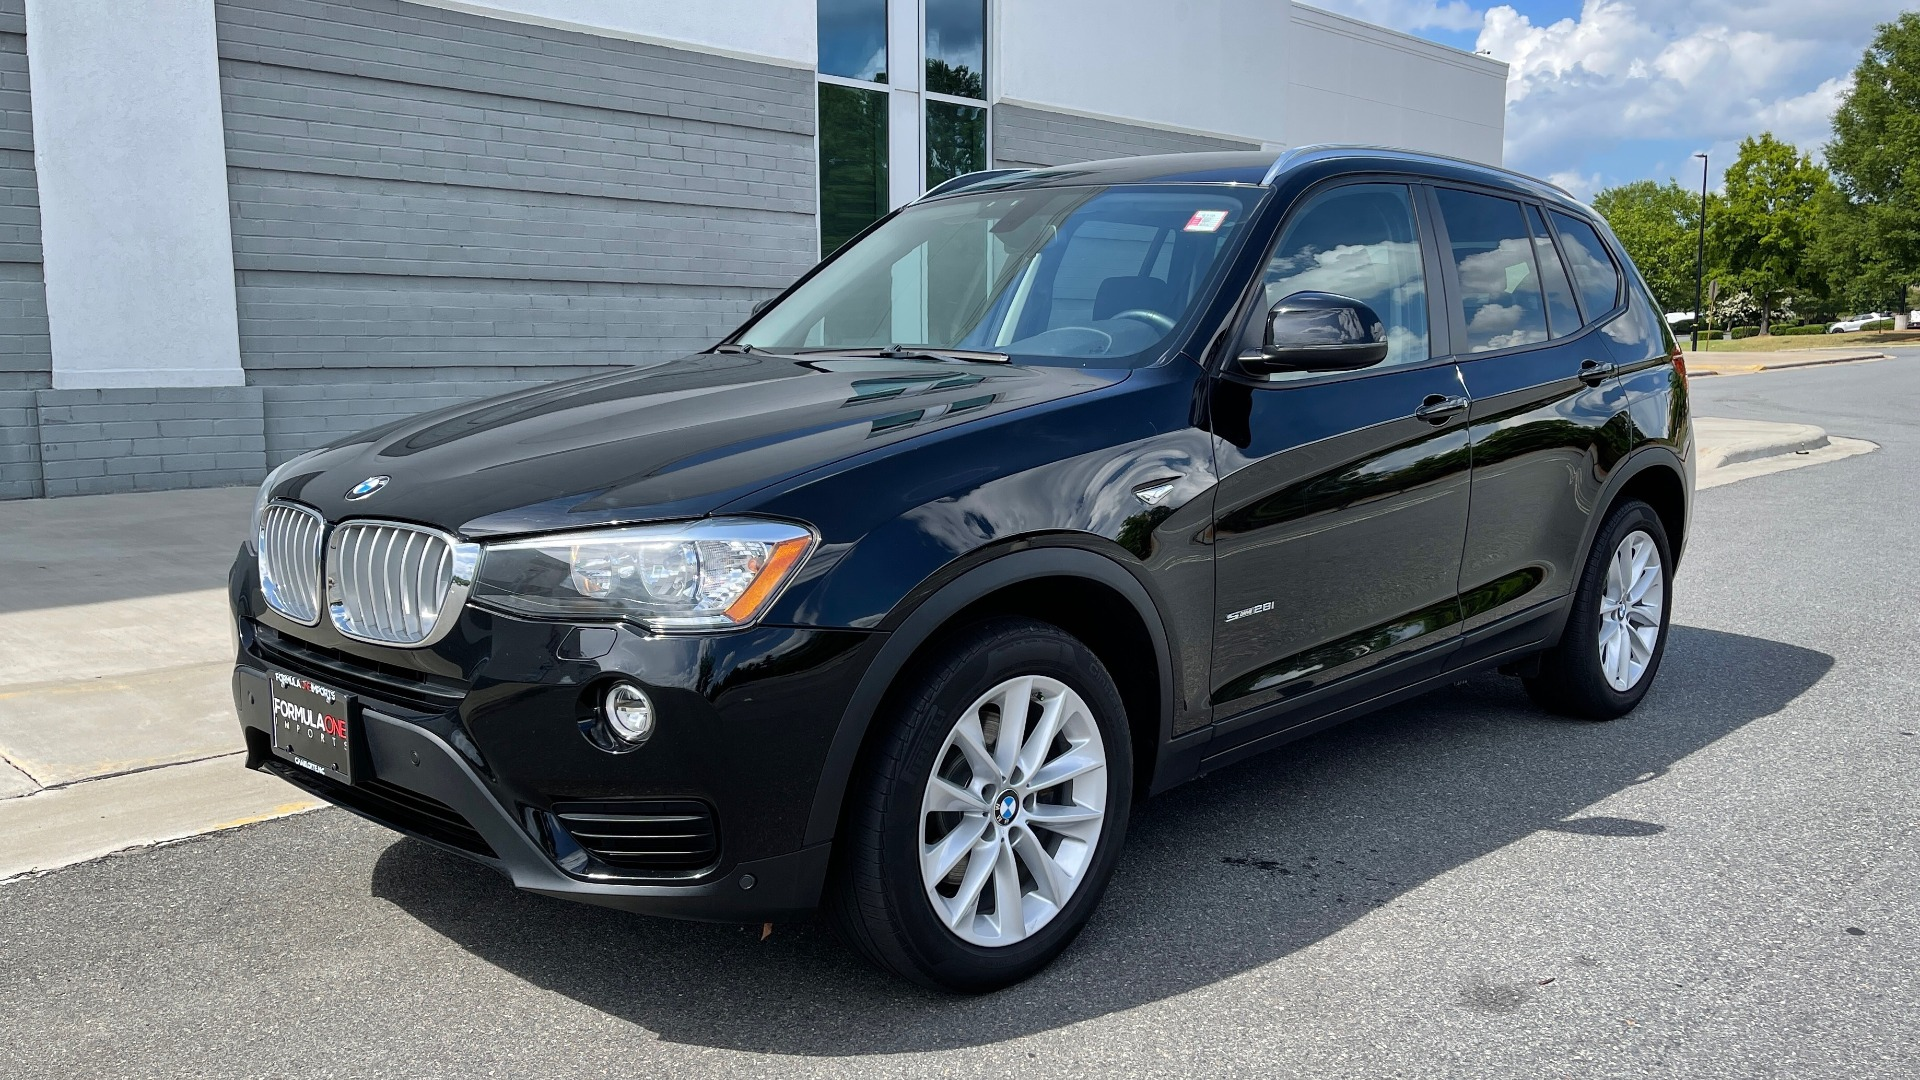 Used 2017 BMW X3 SDRIVE28I / DRVR ASST PKG / HTD STS / REARVIEW / 18IN WHEELS for sale $24,995 at Formula Imports in Charlotte NC 28227 3